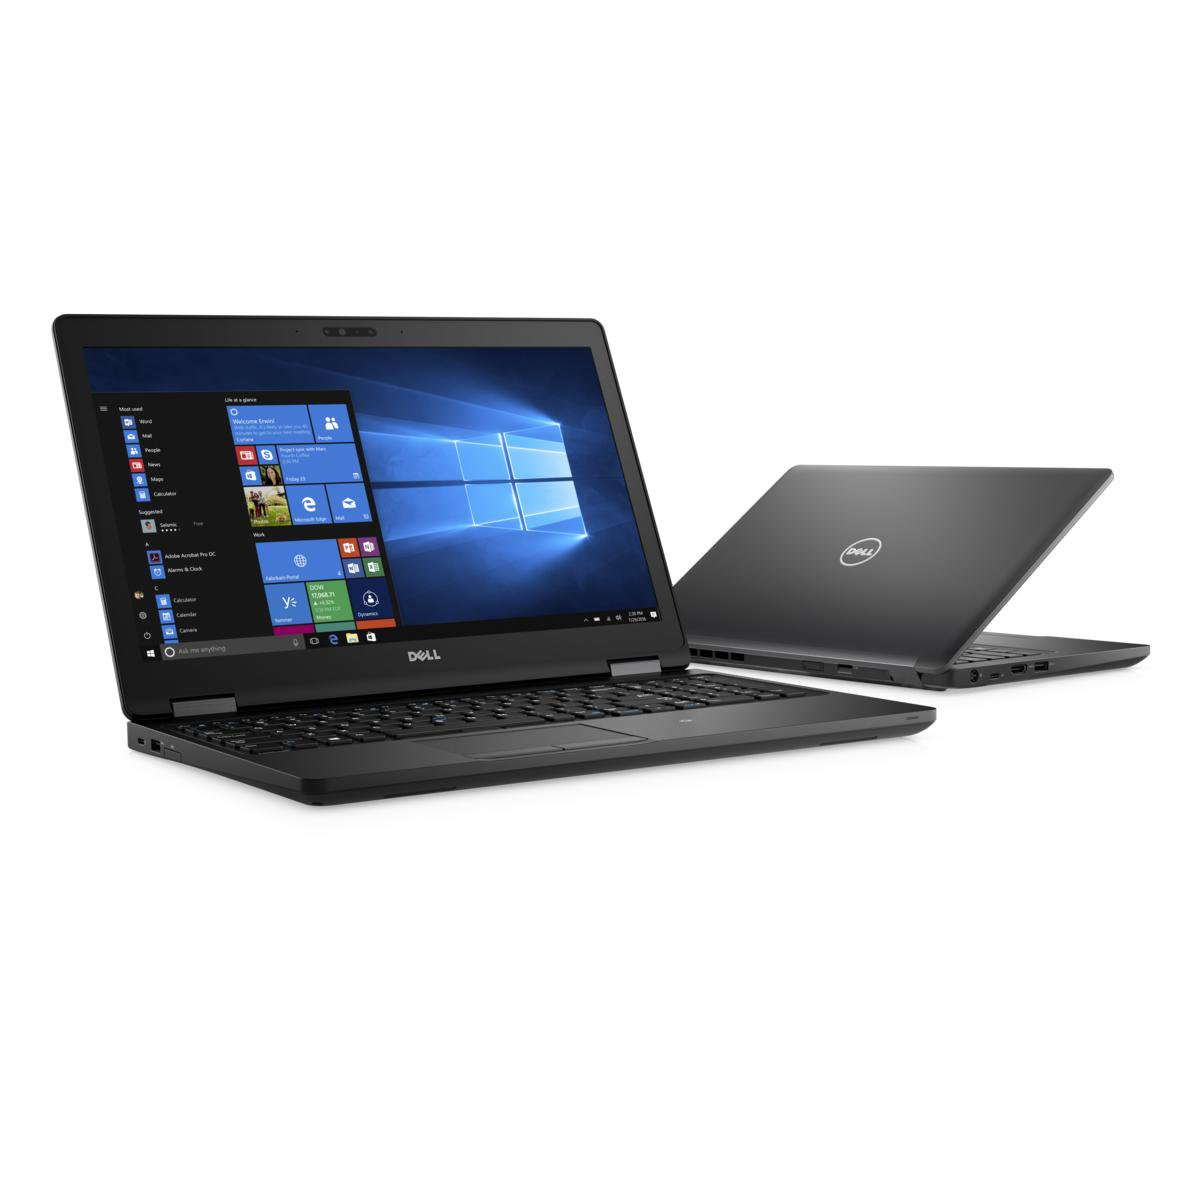 Additional 10% off any #DellOutlet #Latitude Laptop savings up to 50% off Limit 2 Free shipping &amp; warranty included  http:// dell.to/2y9rlXf  &nbsp;   <br>http://pic.twitter.com/4XB6FLVhAx